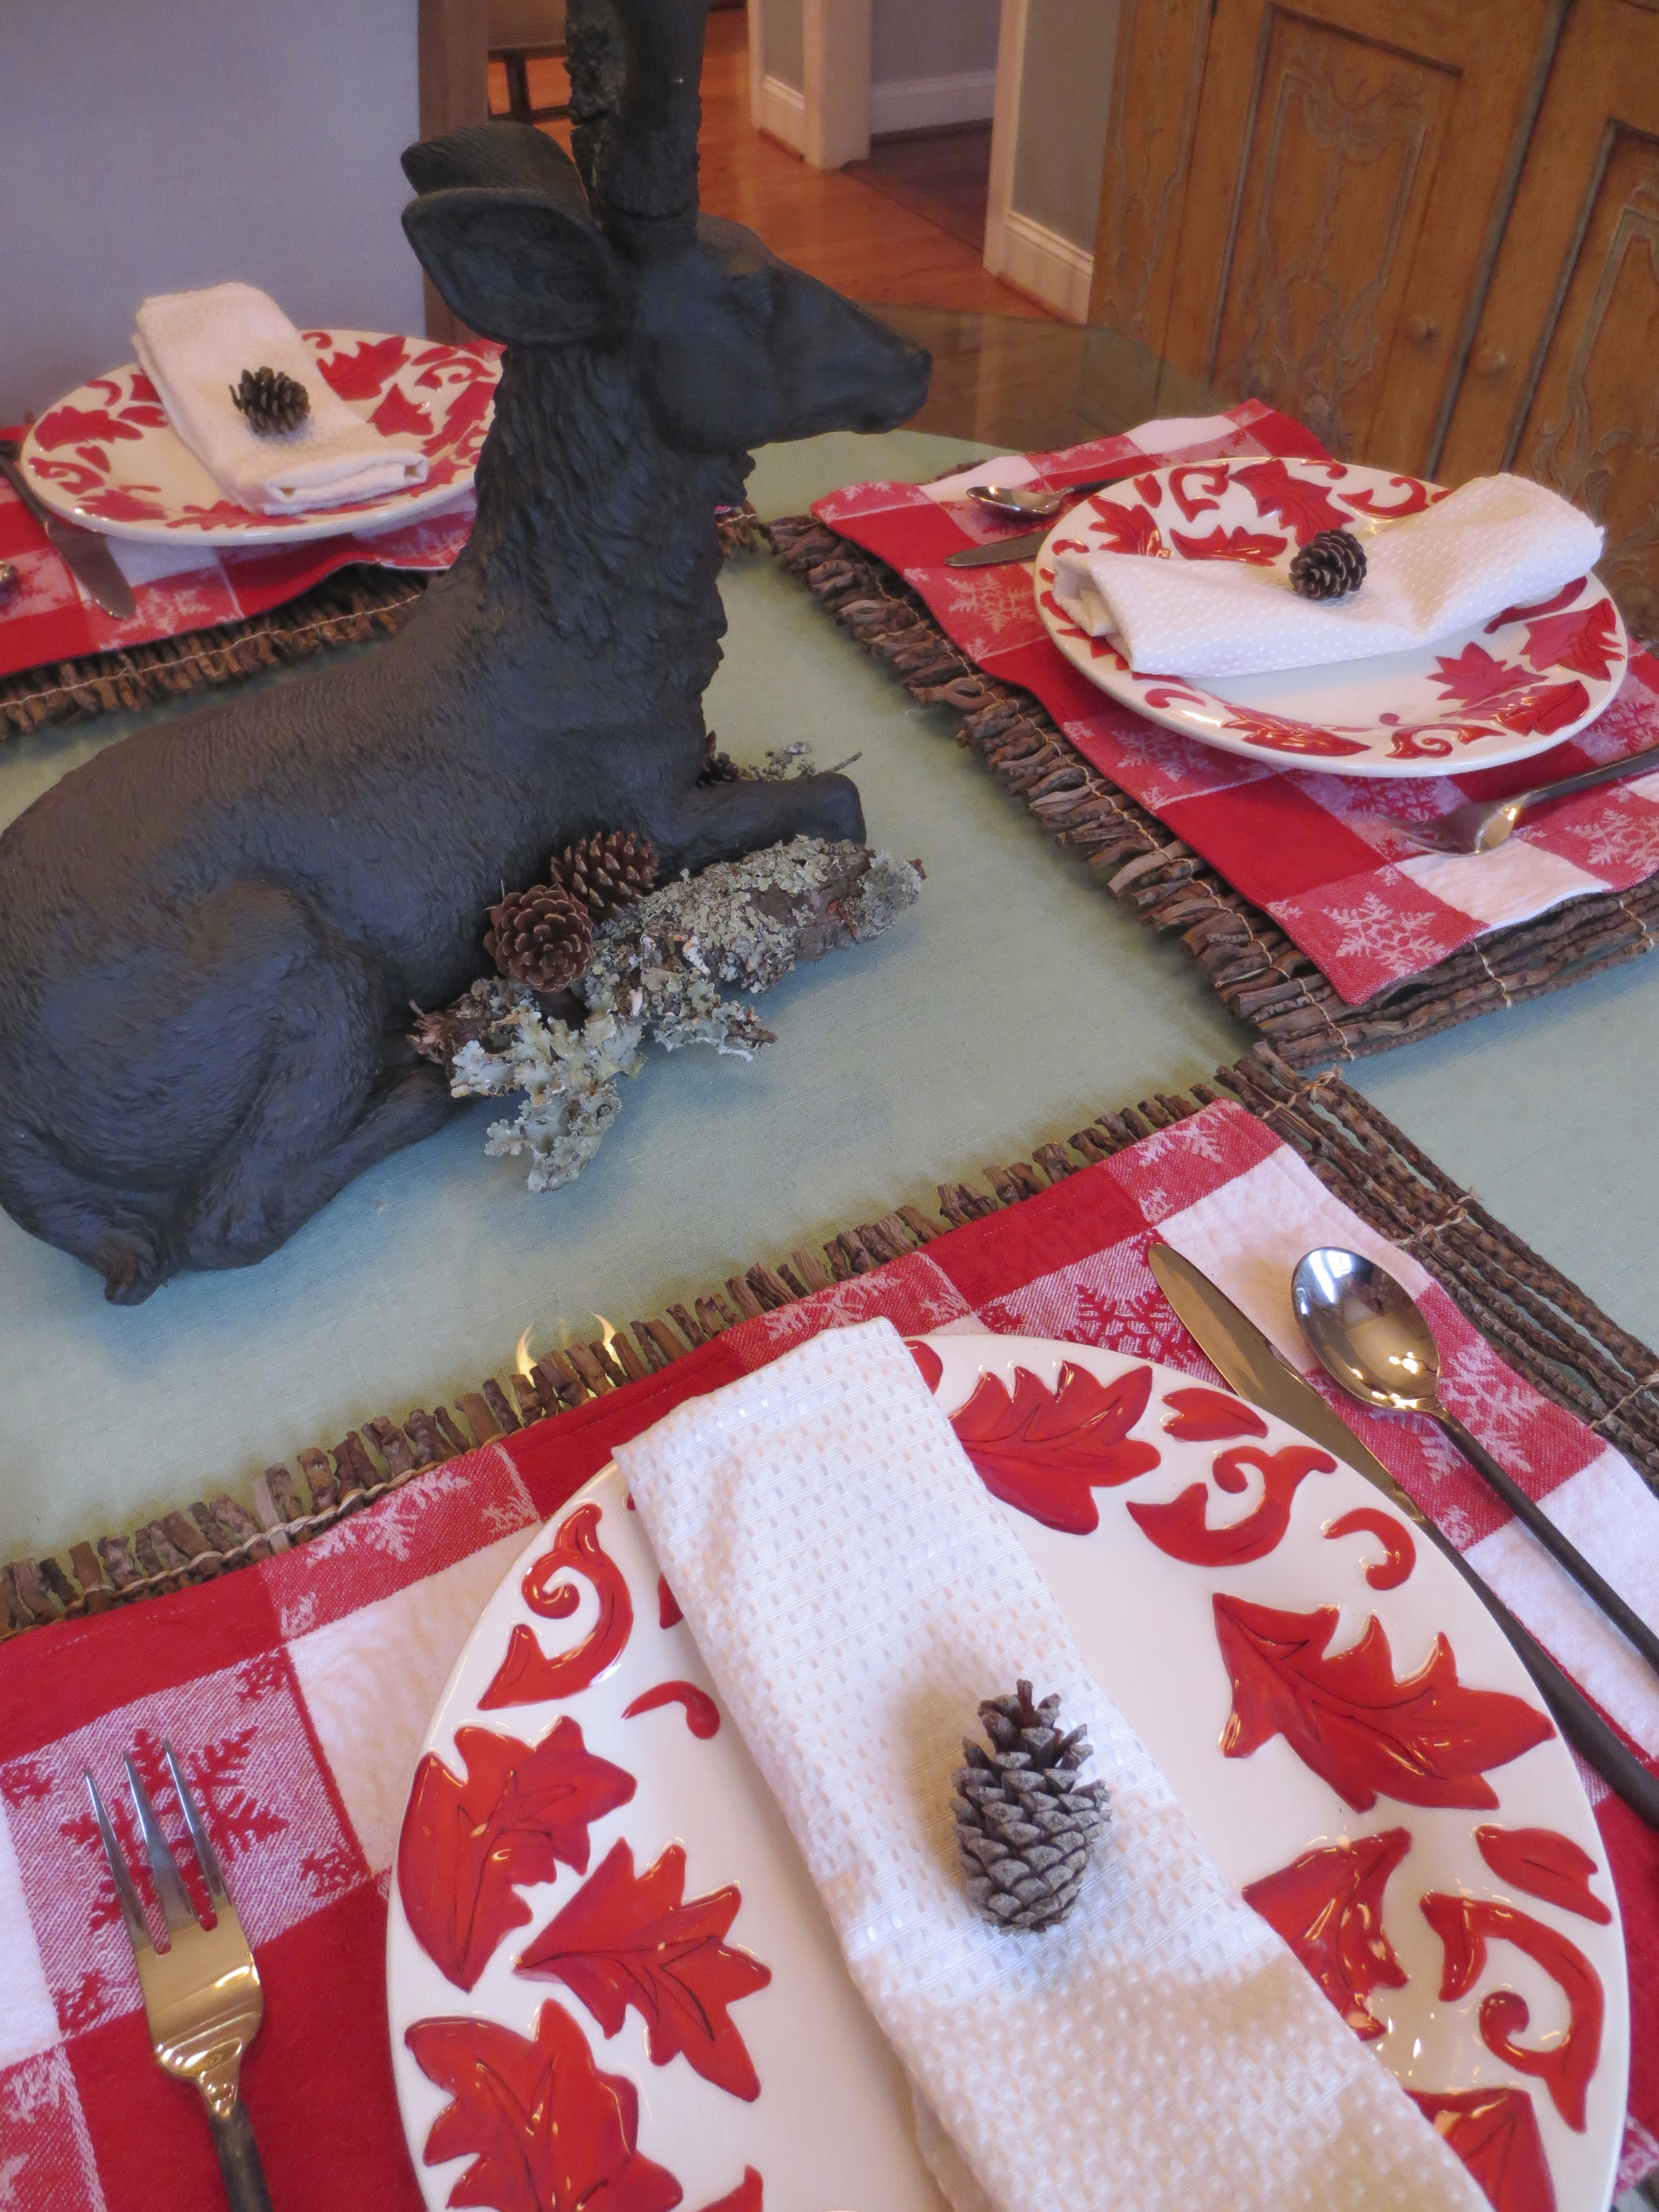 Red plaid place mats and red and white floral plates